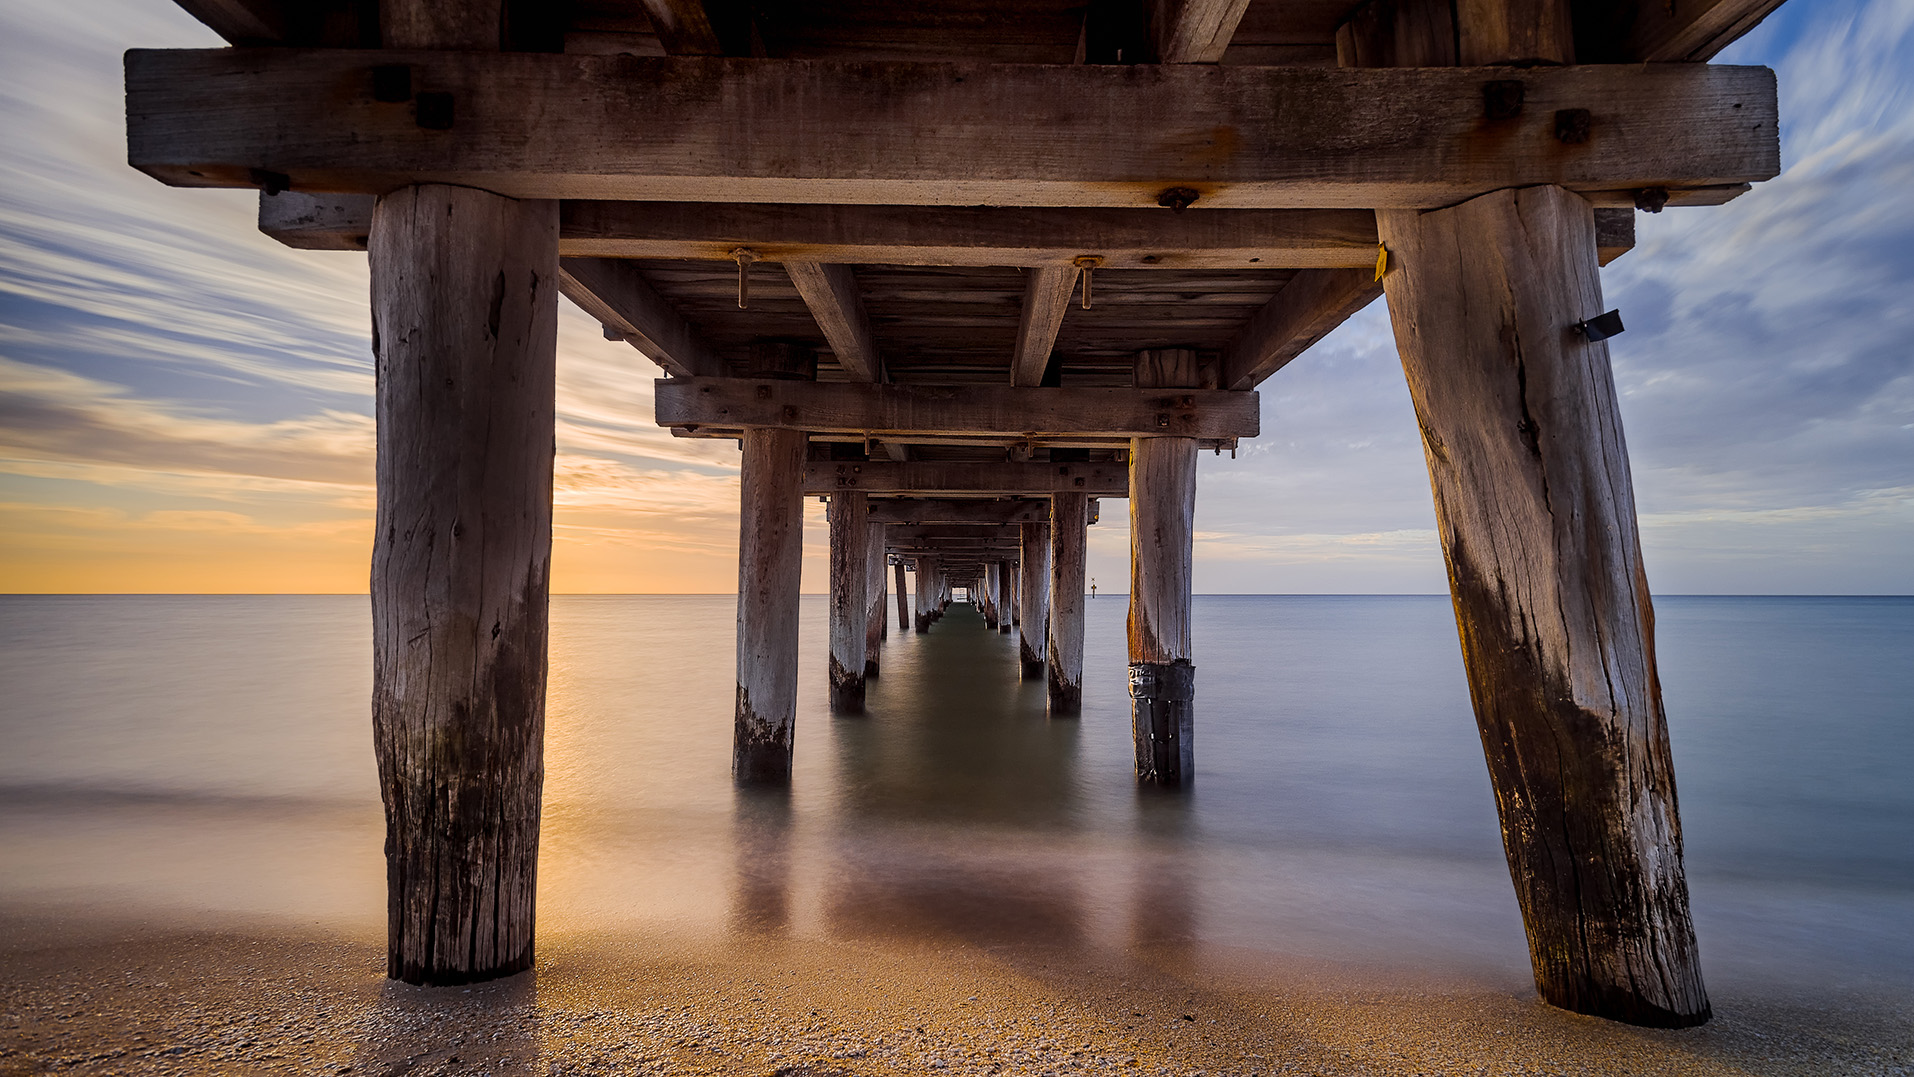 A summer sunset at Seaford Pier (Melbourne, Victoria, Australia) - Photo by Paul Tadday